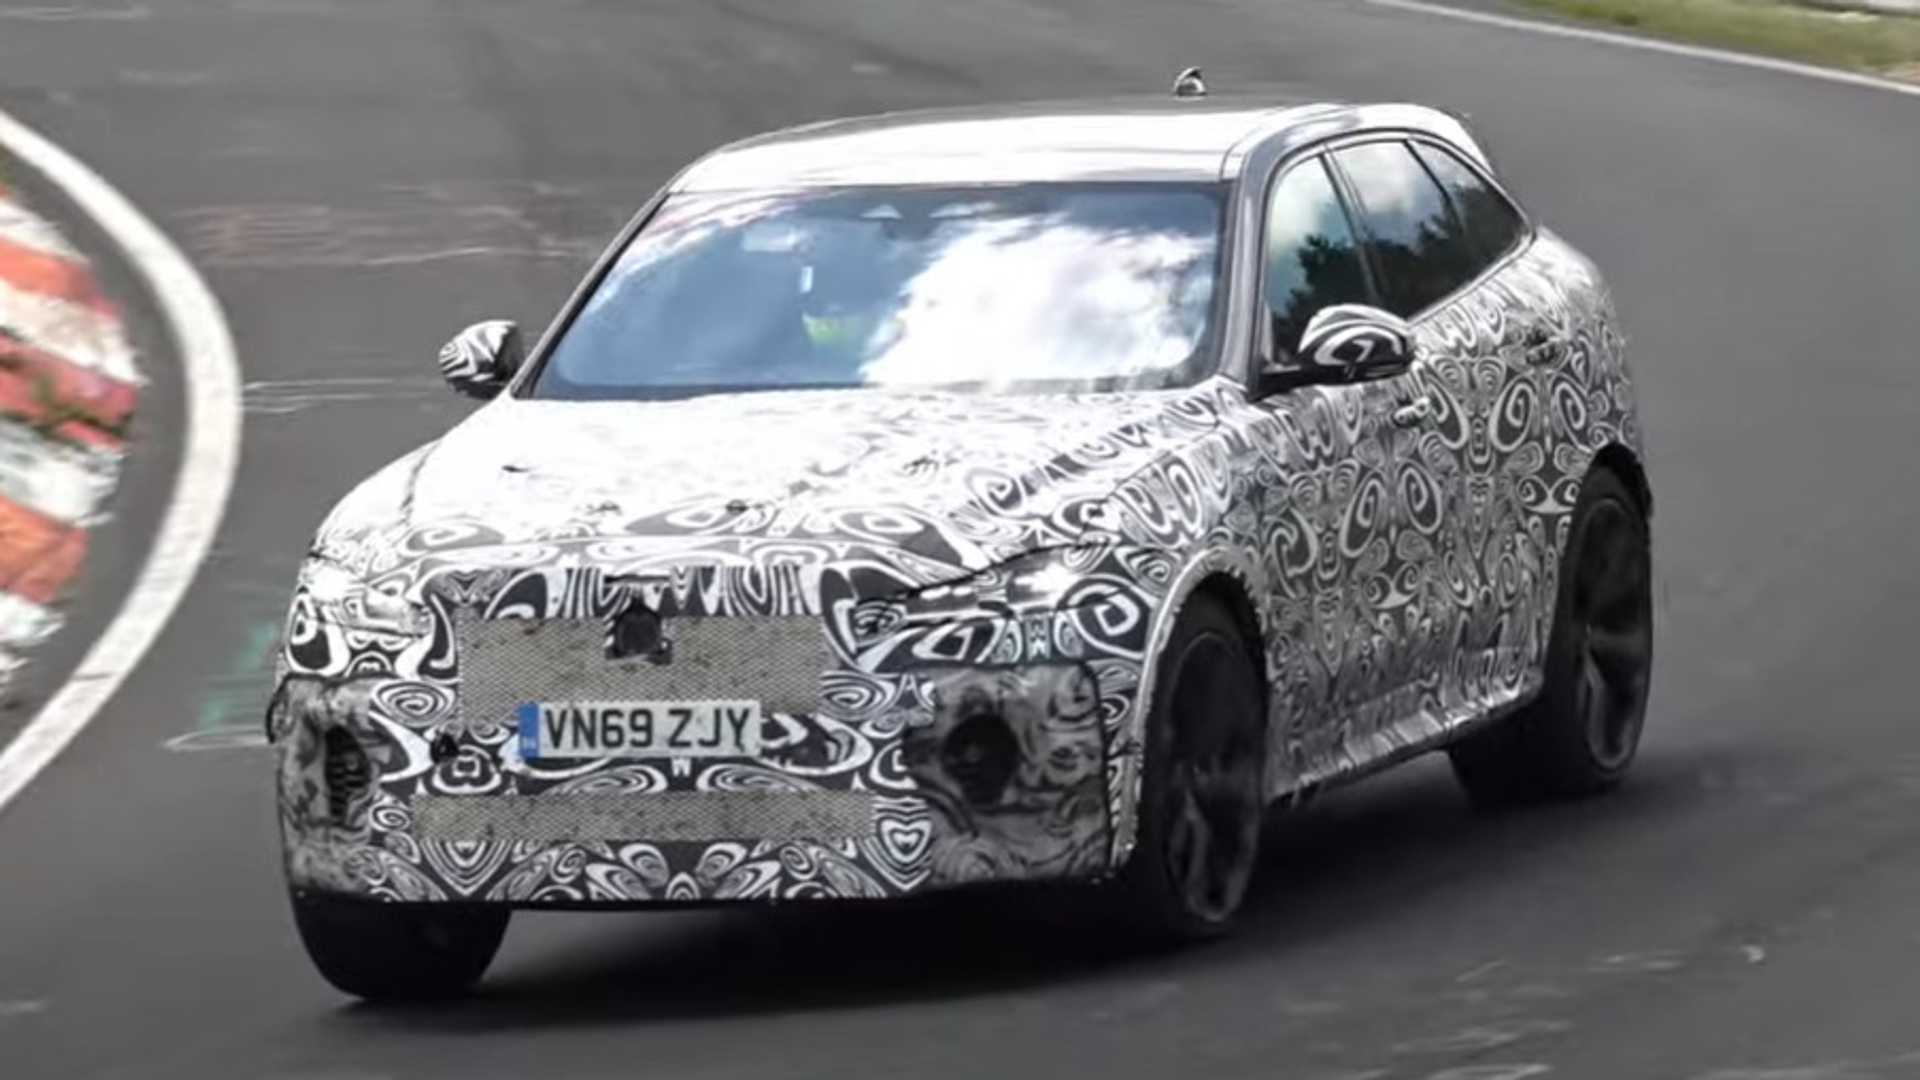 2021 jaguar fpace svr caught stretching its legs at